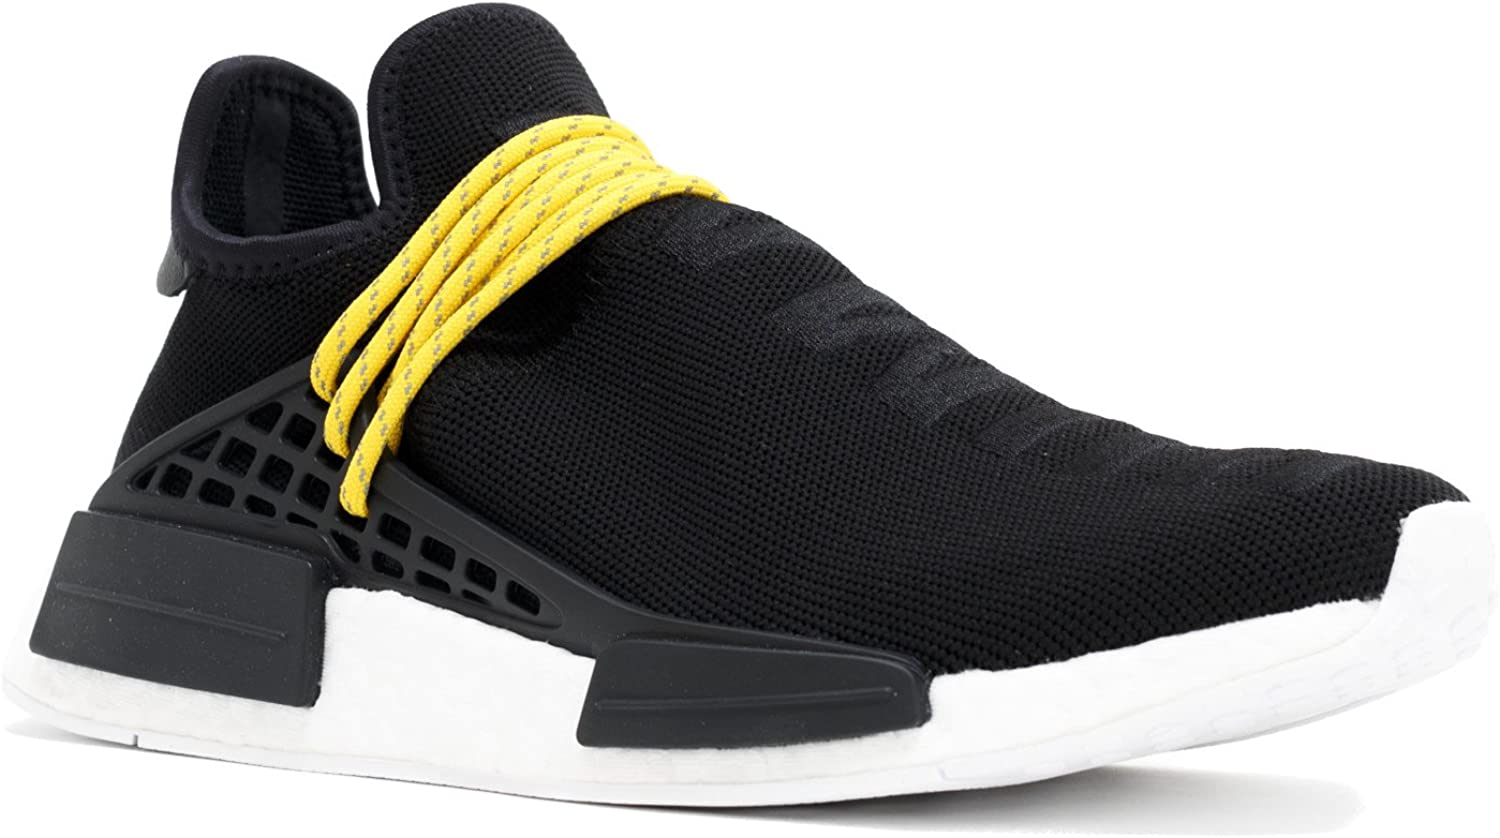 [ADIDAS - アディダス] PW HUMAN RACE NMD 'PHARRELL' - BB3068 (メンズ)